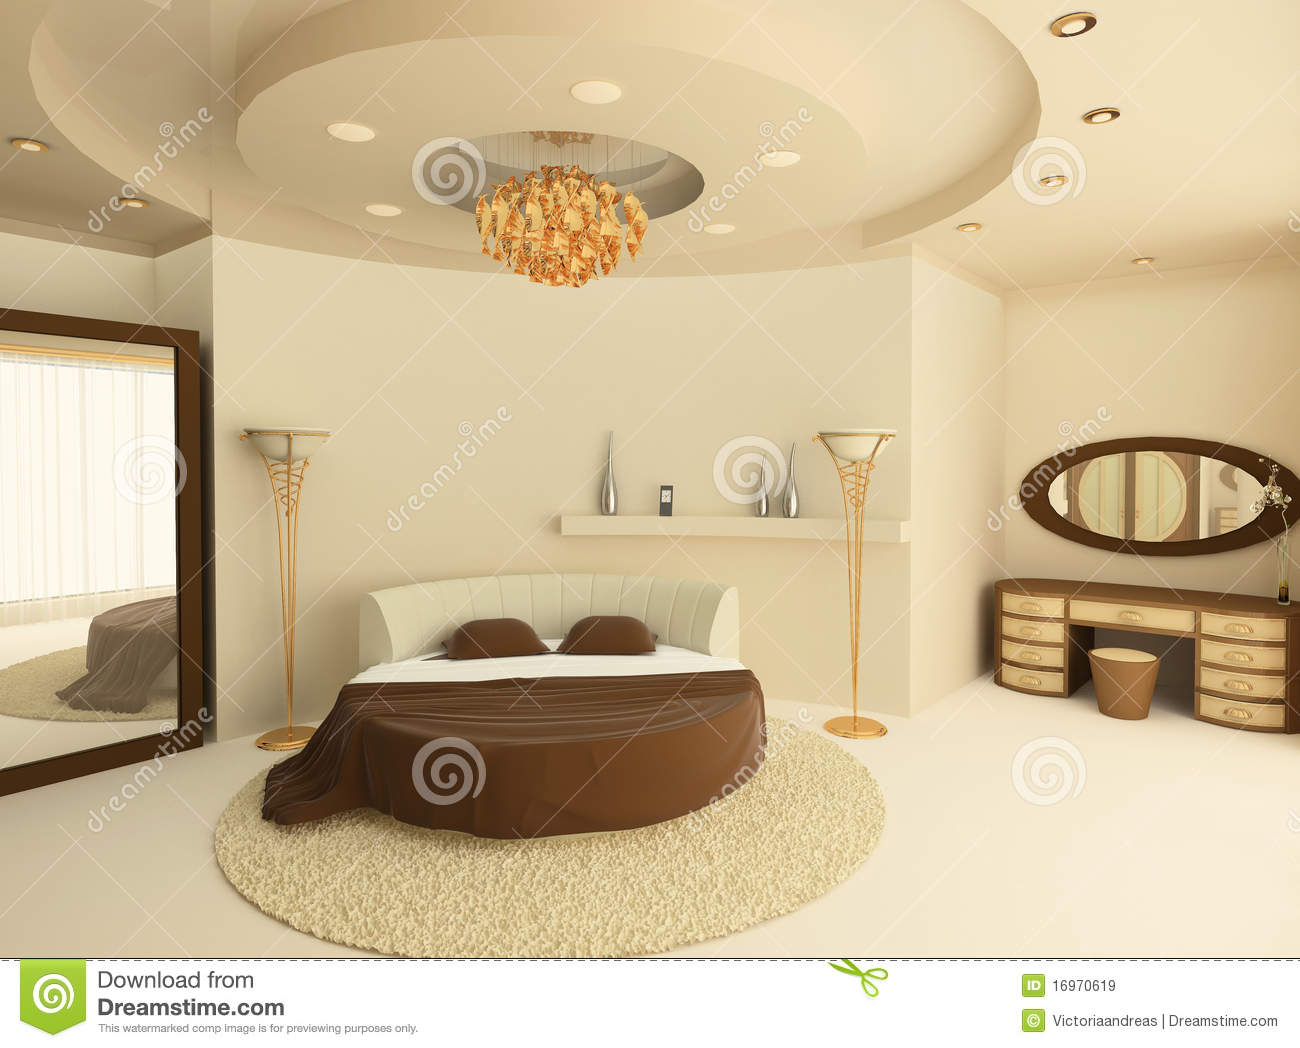 Round Bed With A Suspended Ceiling In Bedroom Royalty Free